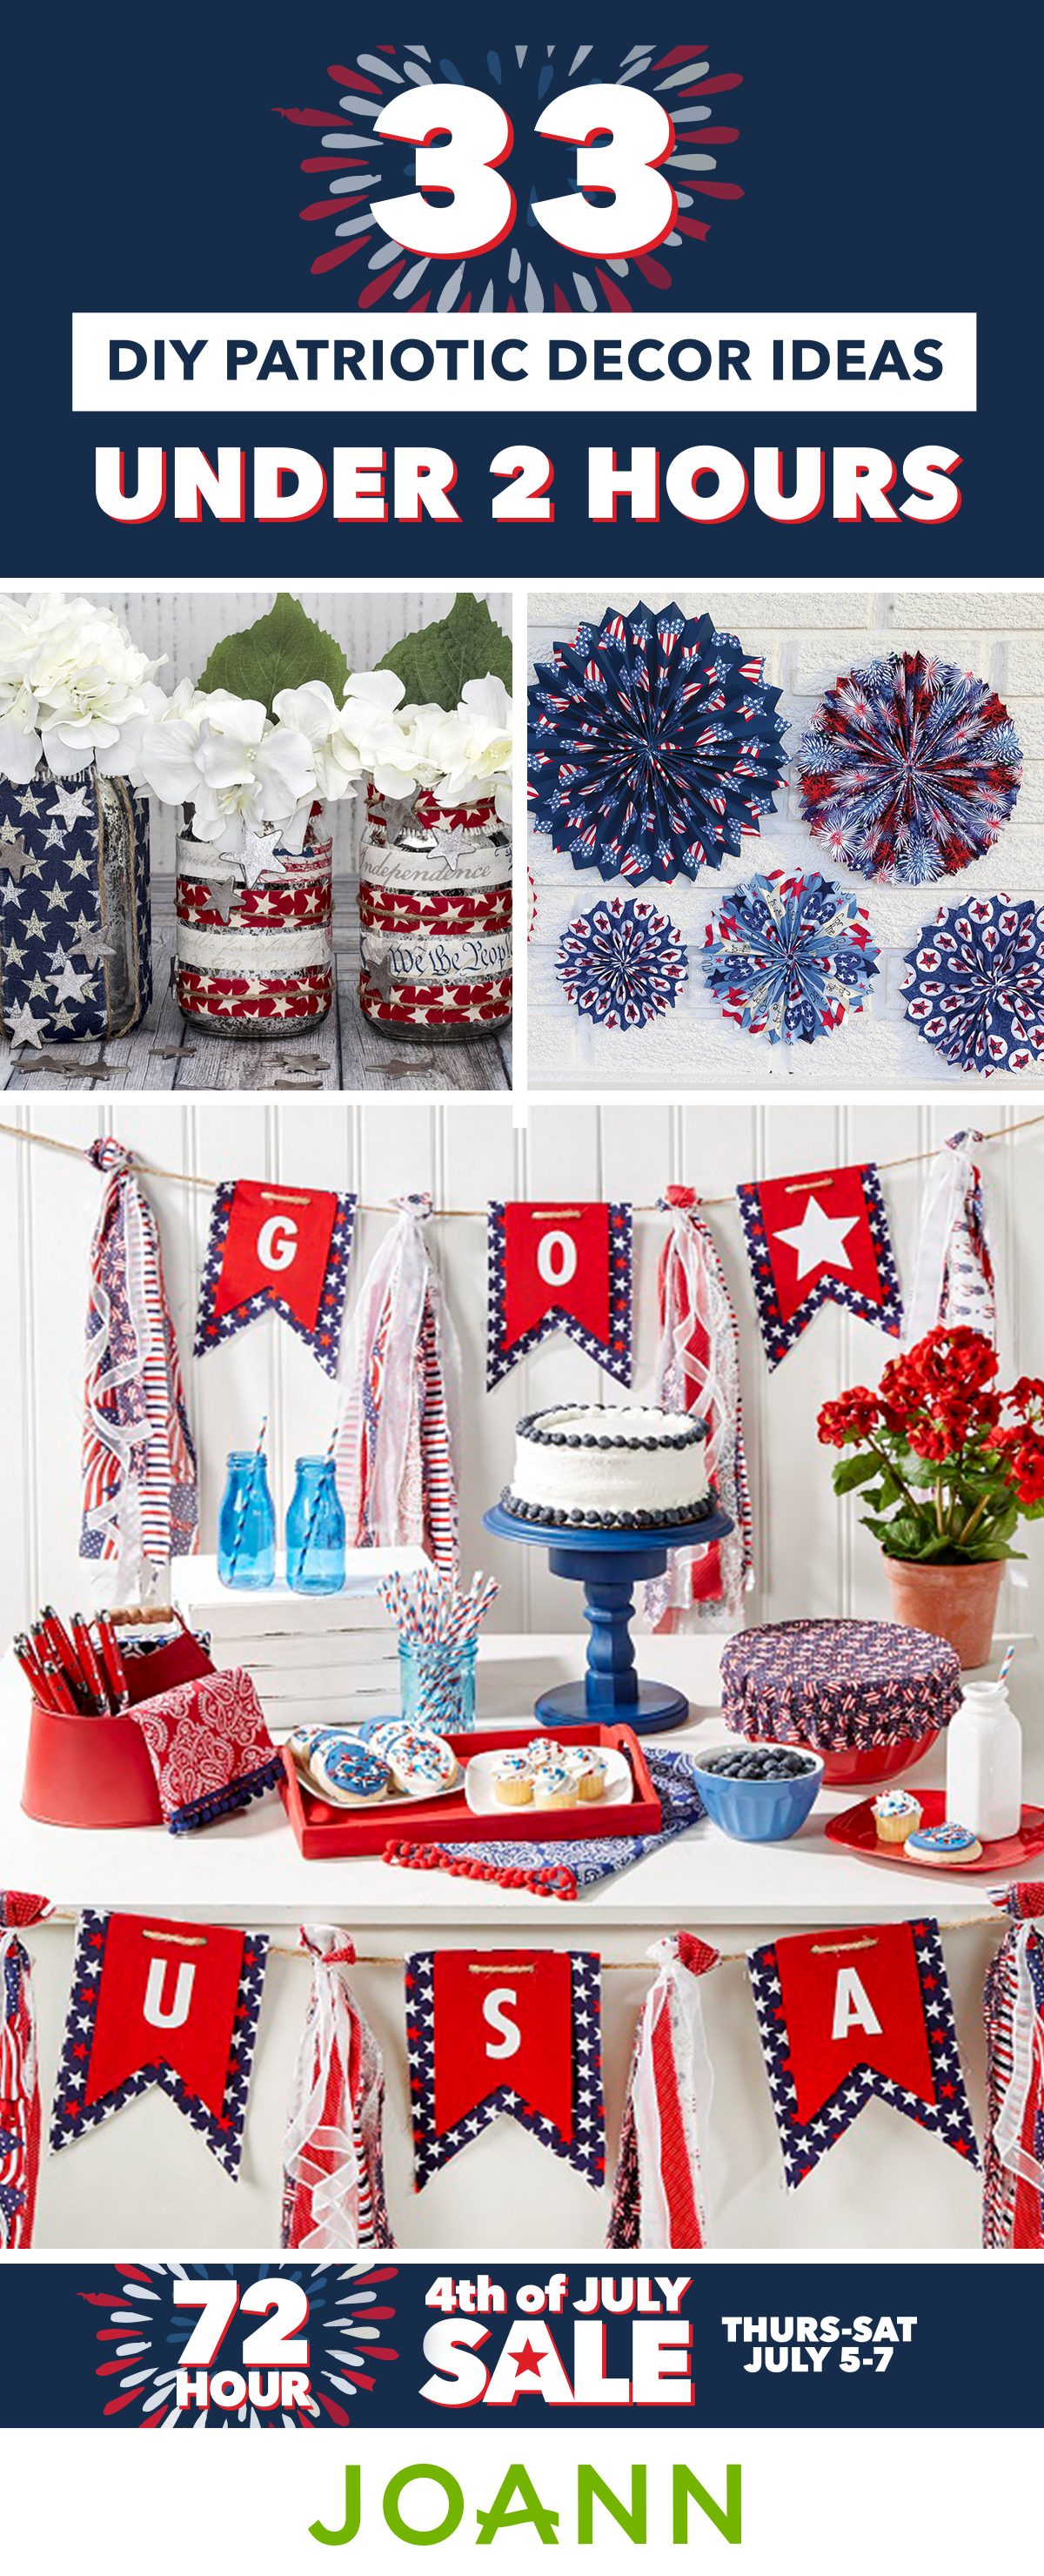 It S Time For A Celebration When You Pair These 33 Diy Patriotic Decor Ideas Under 2 Hours With T Patriotic Decorations Summer Crafts Joanns Fabric And Crafts